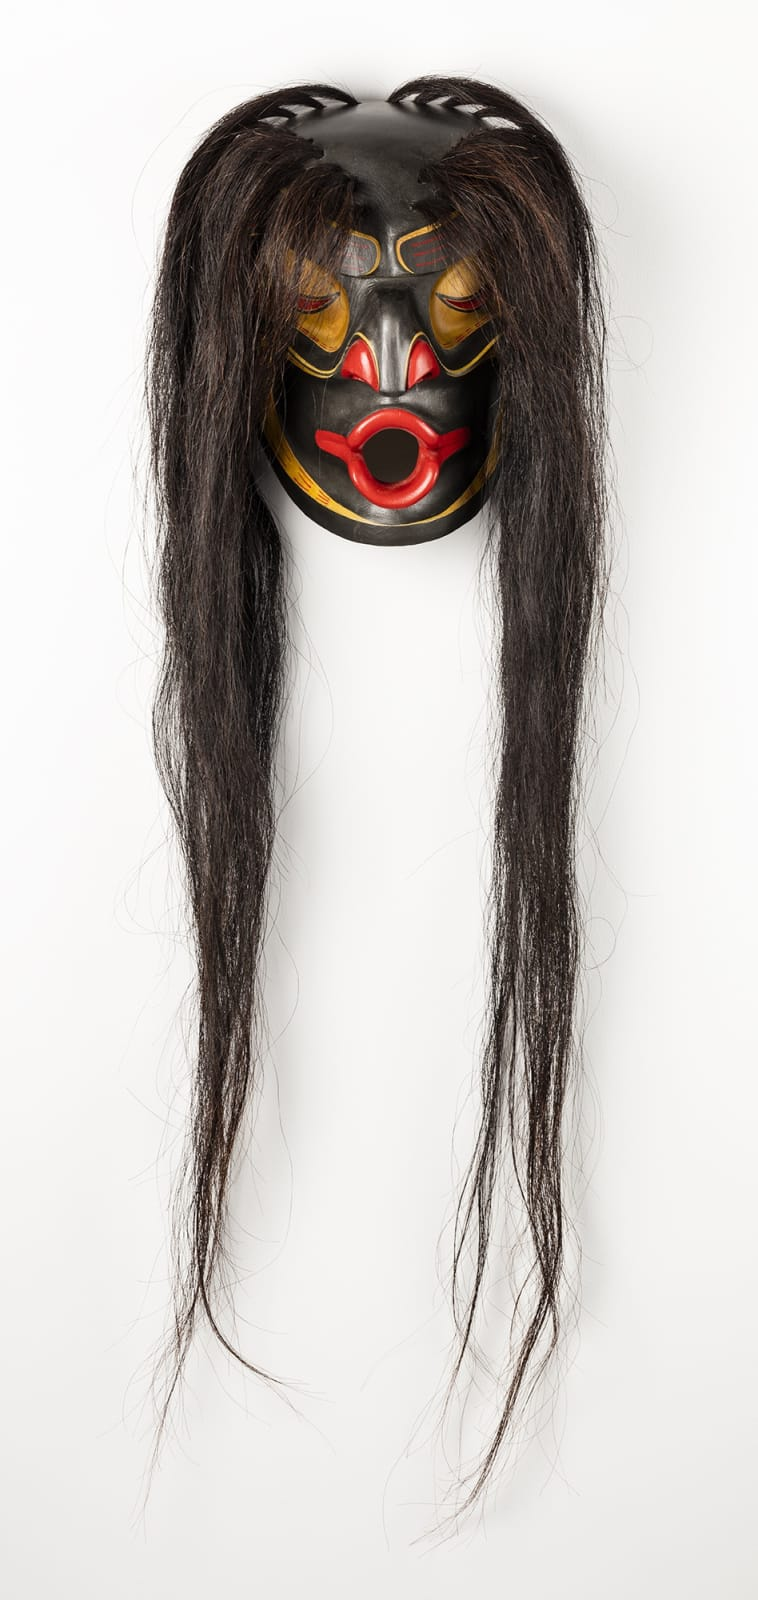 Lot 117 KLATLE-BHI (1966-), SQUAMISH / KWAKWAKA'WAKW Dzoonakwa, 1996 polychrome wood, hair, fabric strap, 13 x 8.75 x 6.5 in (33 x 22.2 x 16.5 cm) excluding hair Estimate: $4,000⁠⁠⁠— $6,000